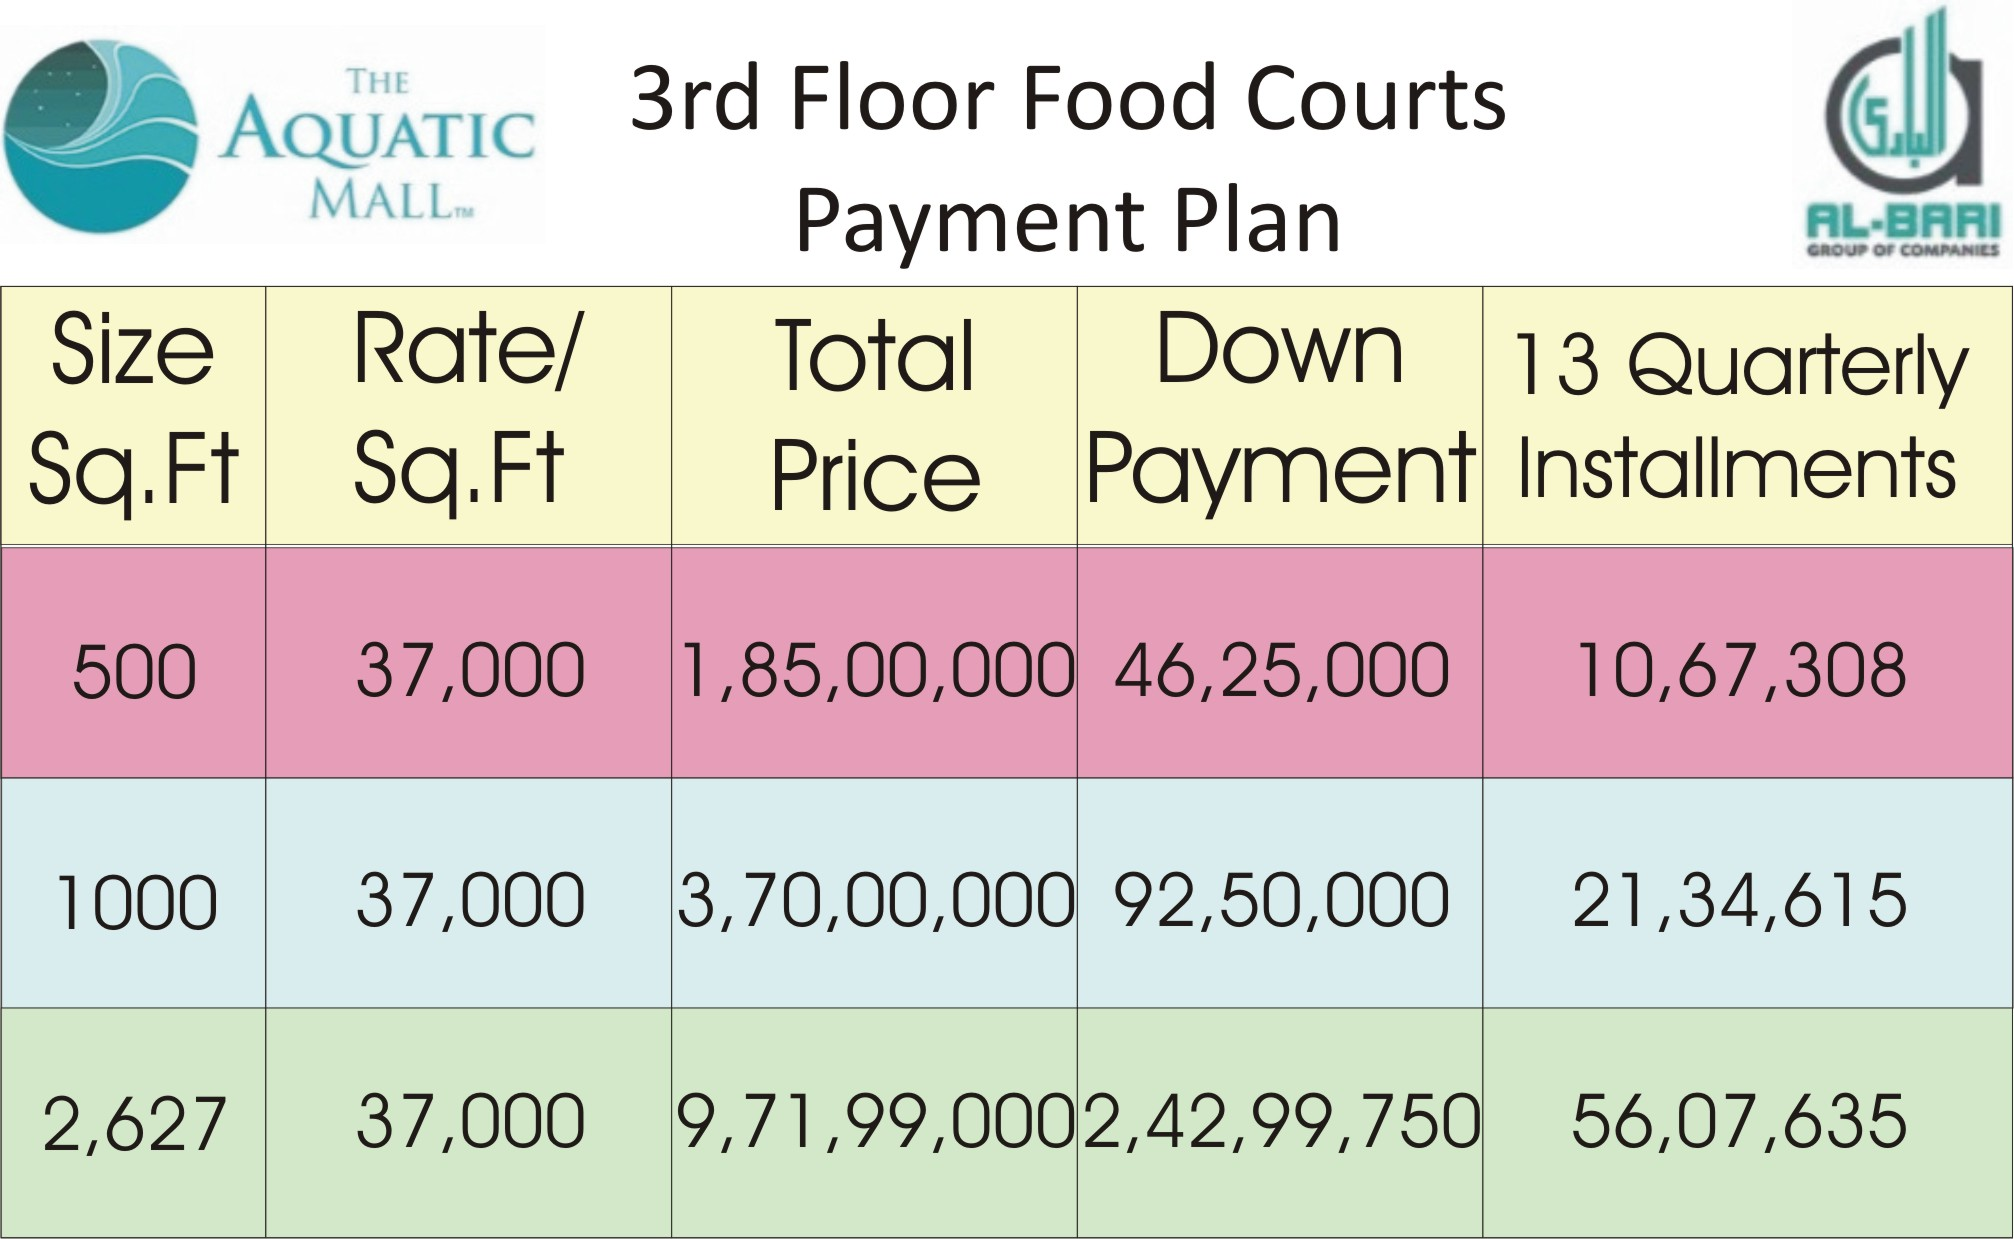 Aquatic Mall 3rd Floor Food Courts Payment Plan